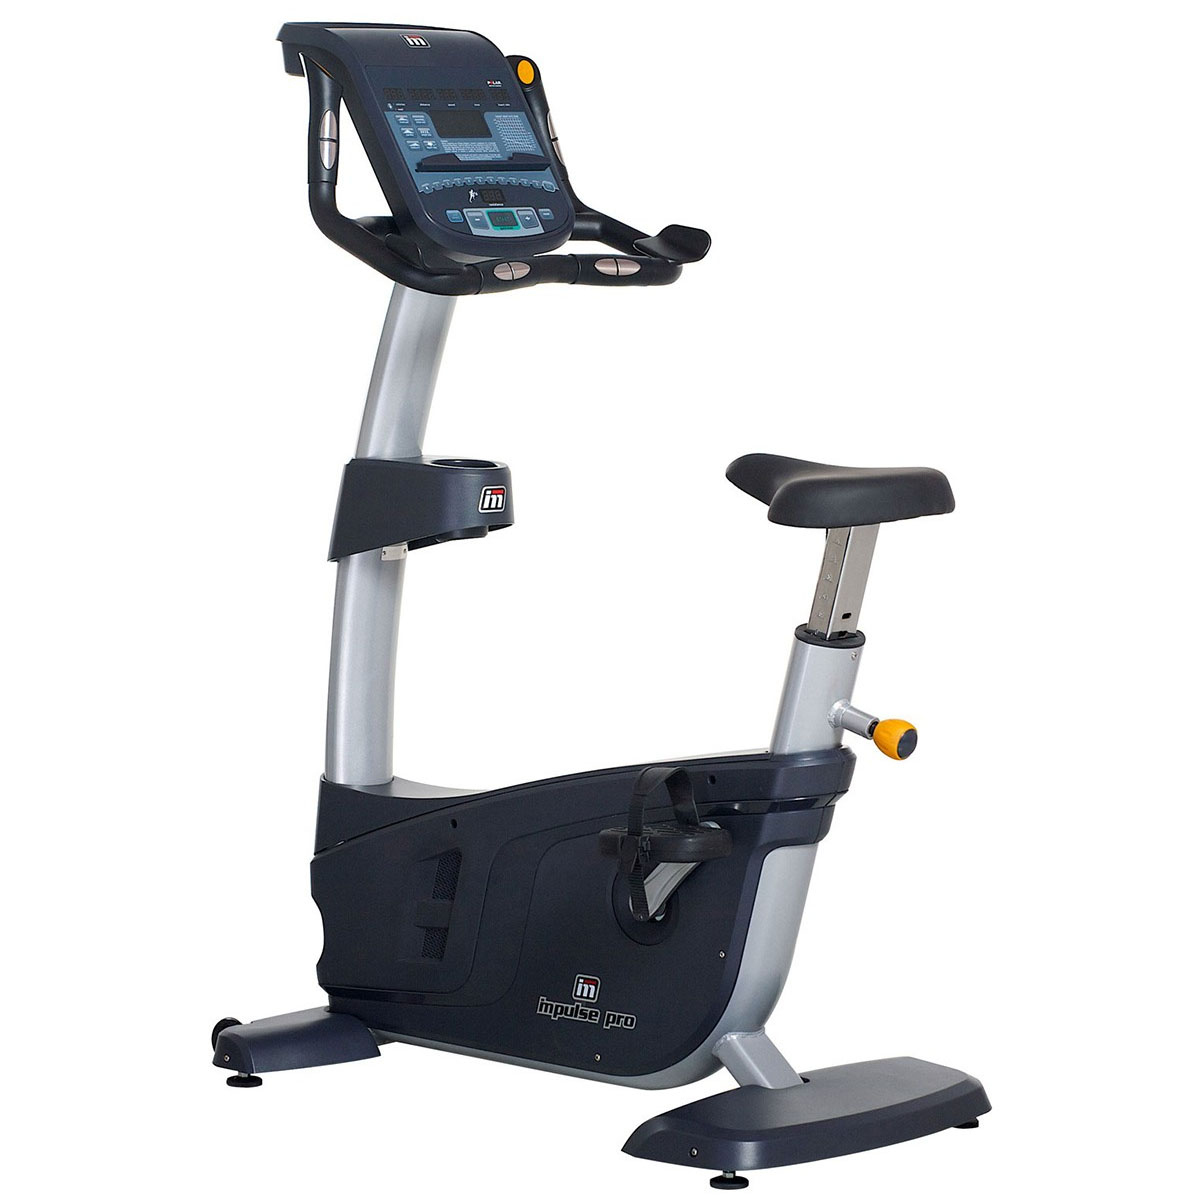 Impulse RU700 Upright Exercise Bike